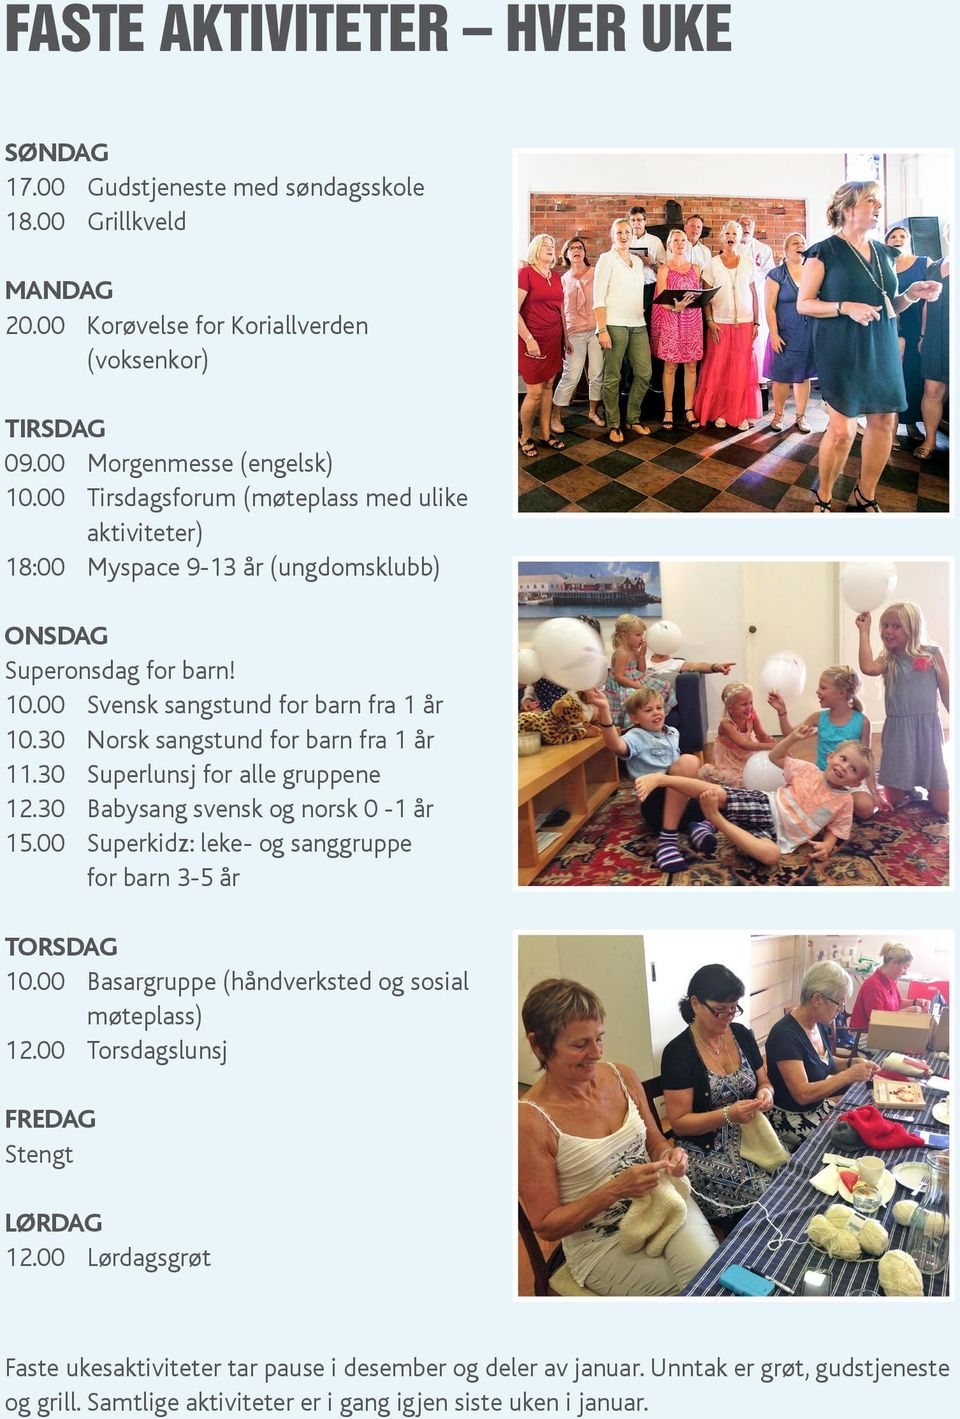 30 Norsk sangstund for barn fra 1 år 11.30 Superlunsj for alle gruppene 12.30 Babysang svensk og norsk 0-1 år 15.00 Superkidz: leke- og sanggruppe for barn 3-5 år TORSDAG 10.